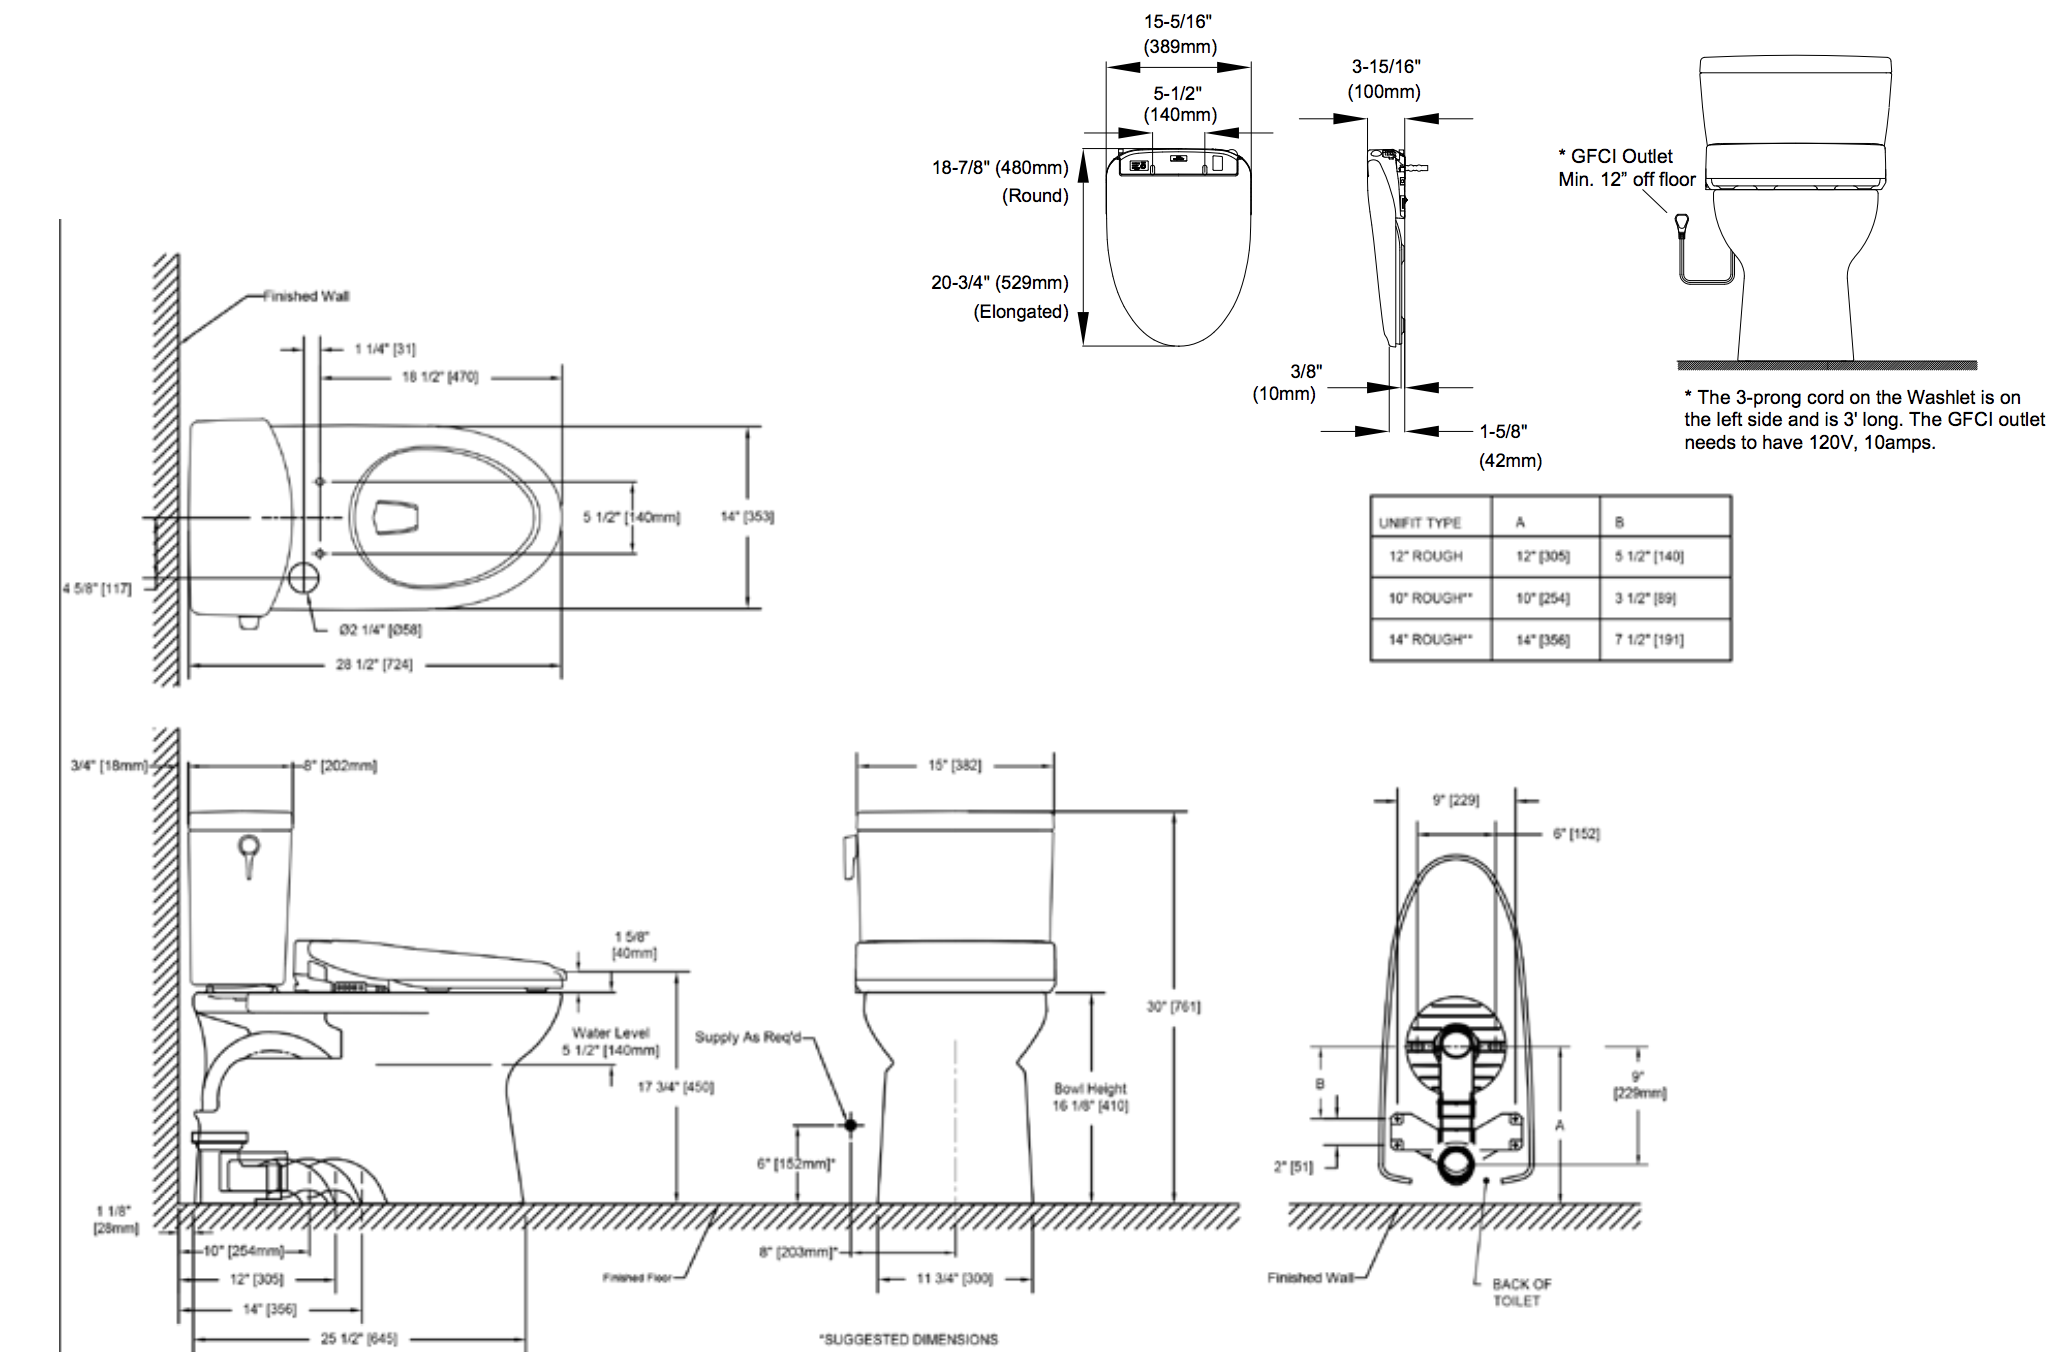 toto-vespin-ii-1g-washlet-s350e-two-piece-toilet-and-bidet-system-1.0-gpf-diagram.png